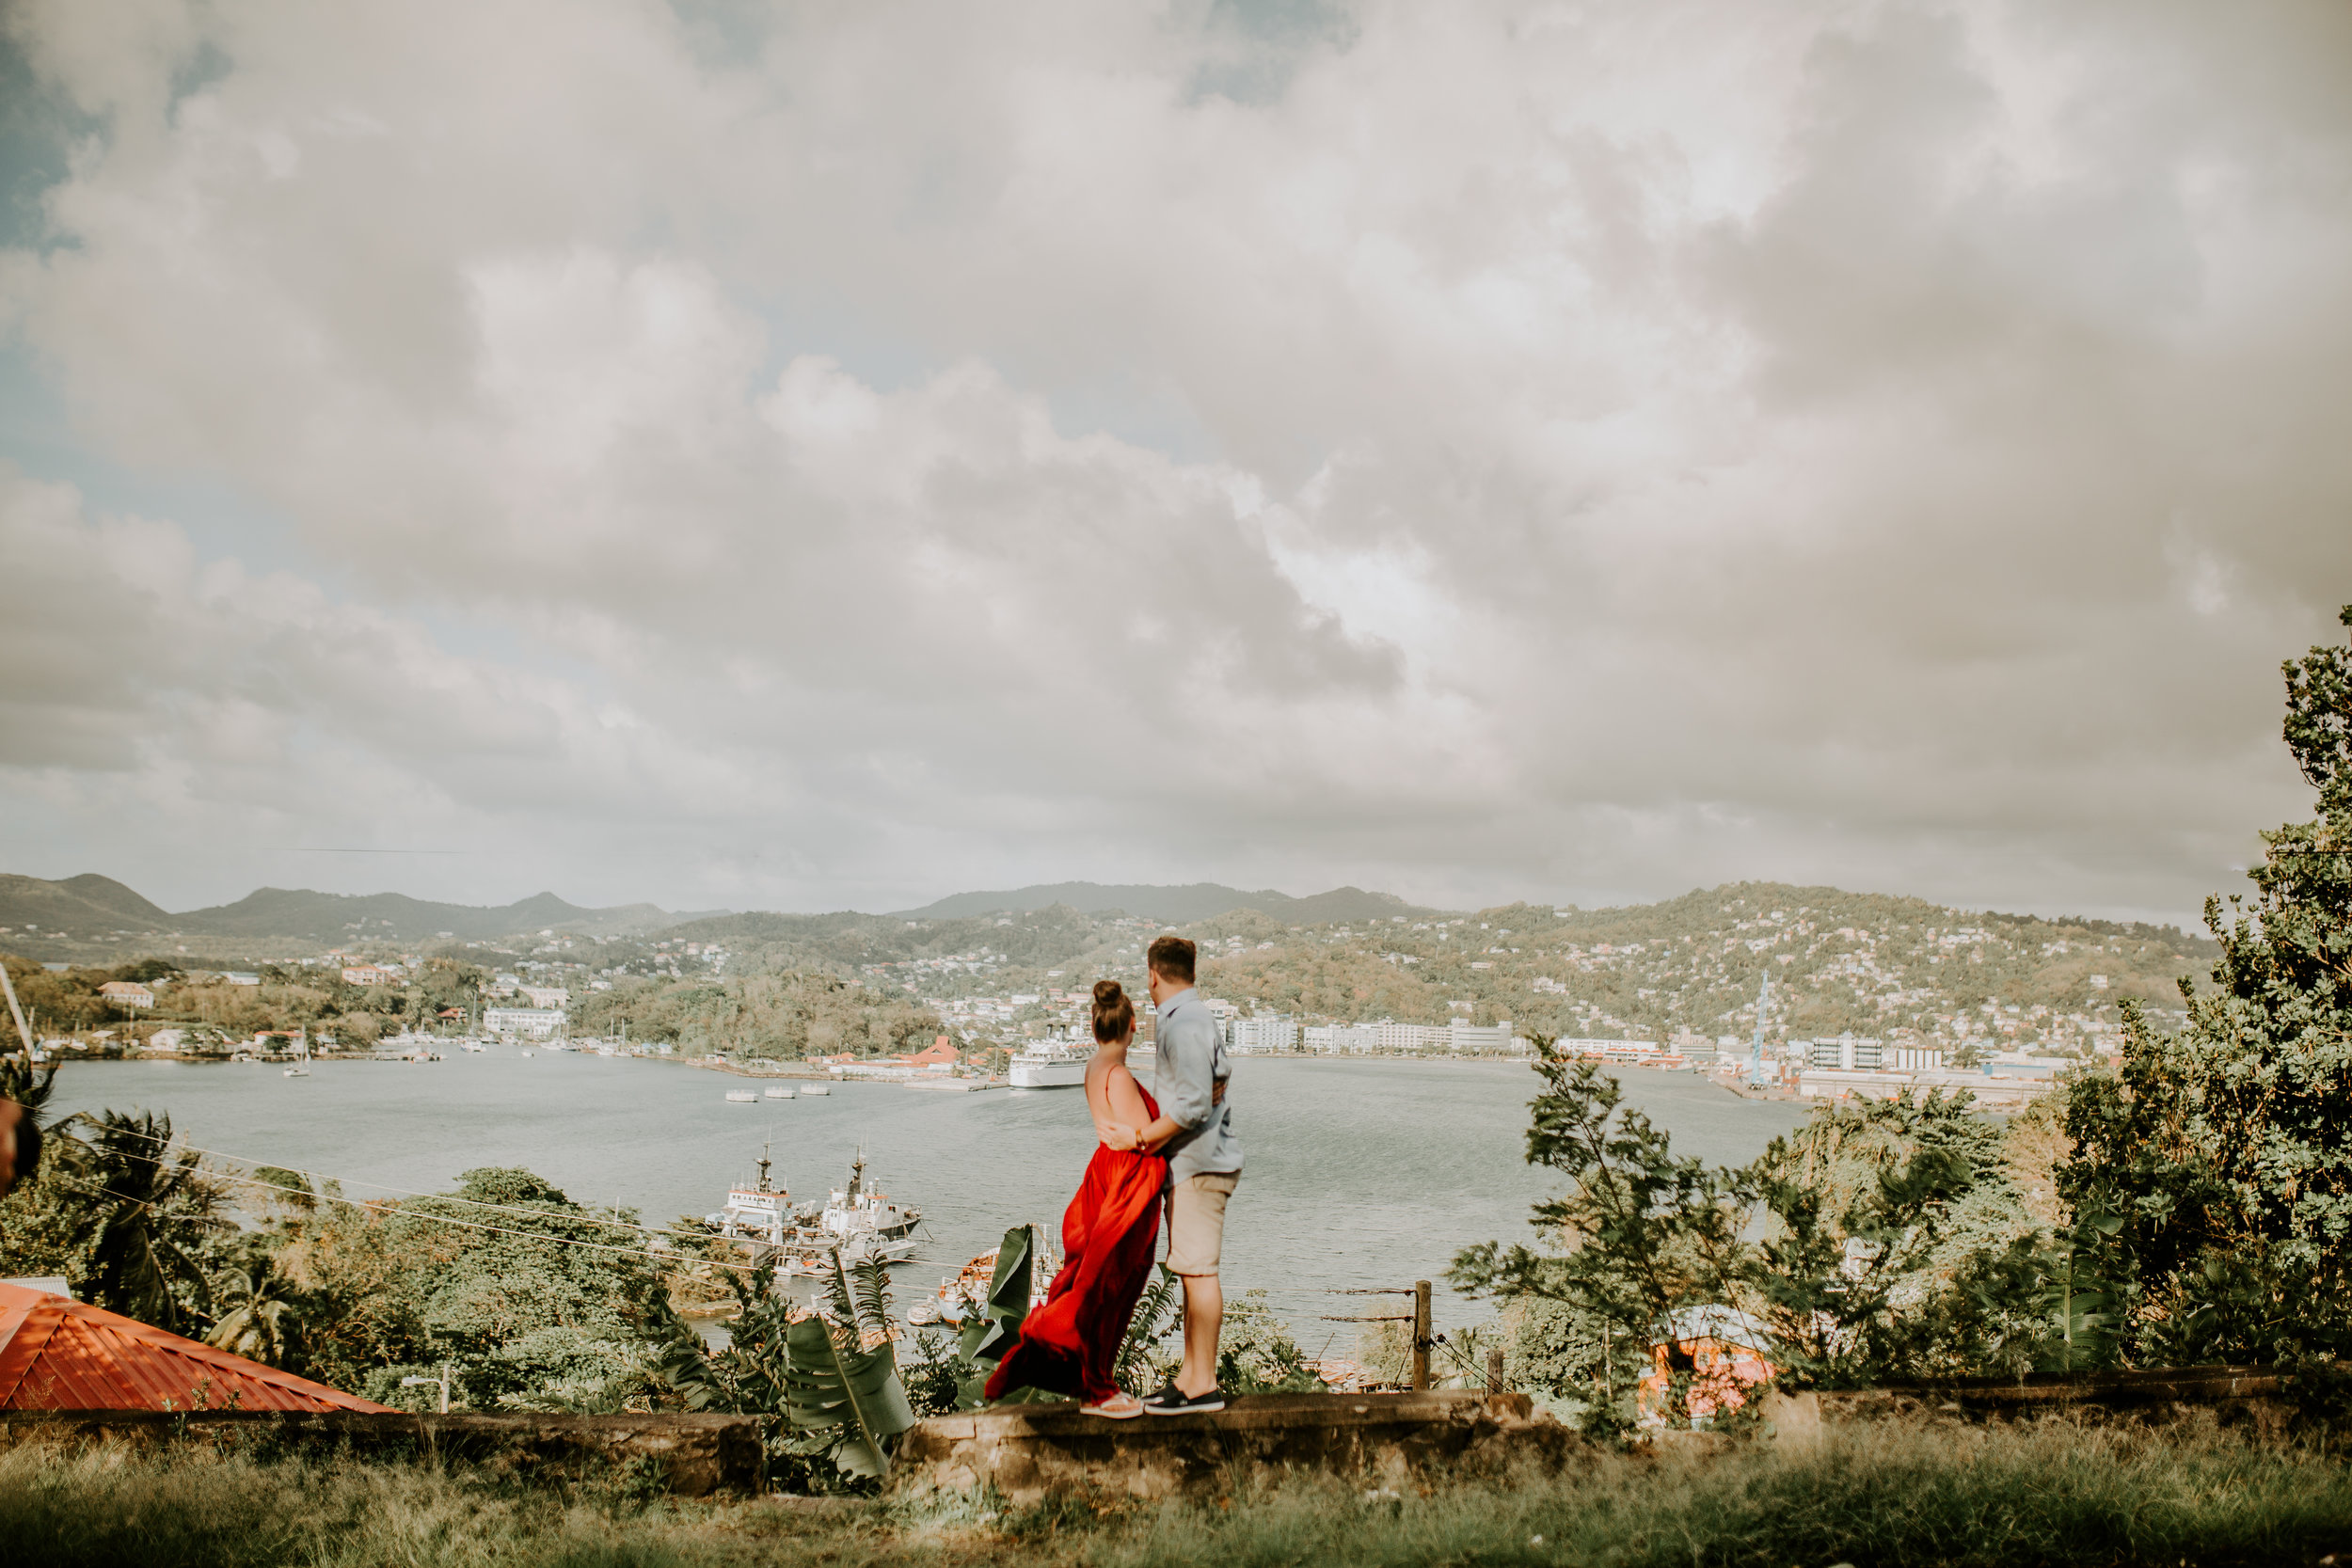 nicole-daacke-photography-st-lucia-destination-wedding-photographer-day-after-session-castries-sandals-resort-adventure-island-engagement-soufriere-piton-adventure-session-photos-photographer-9.jpg